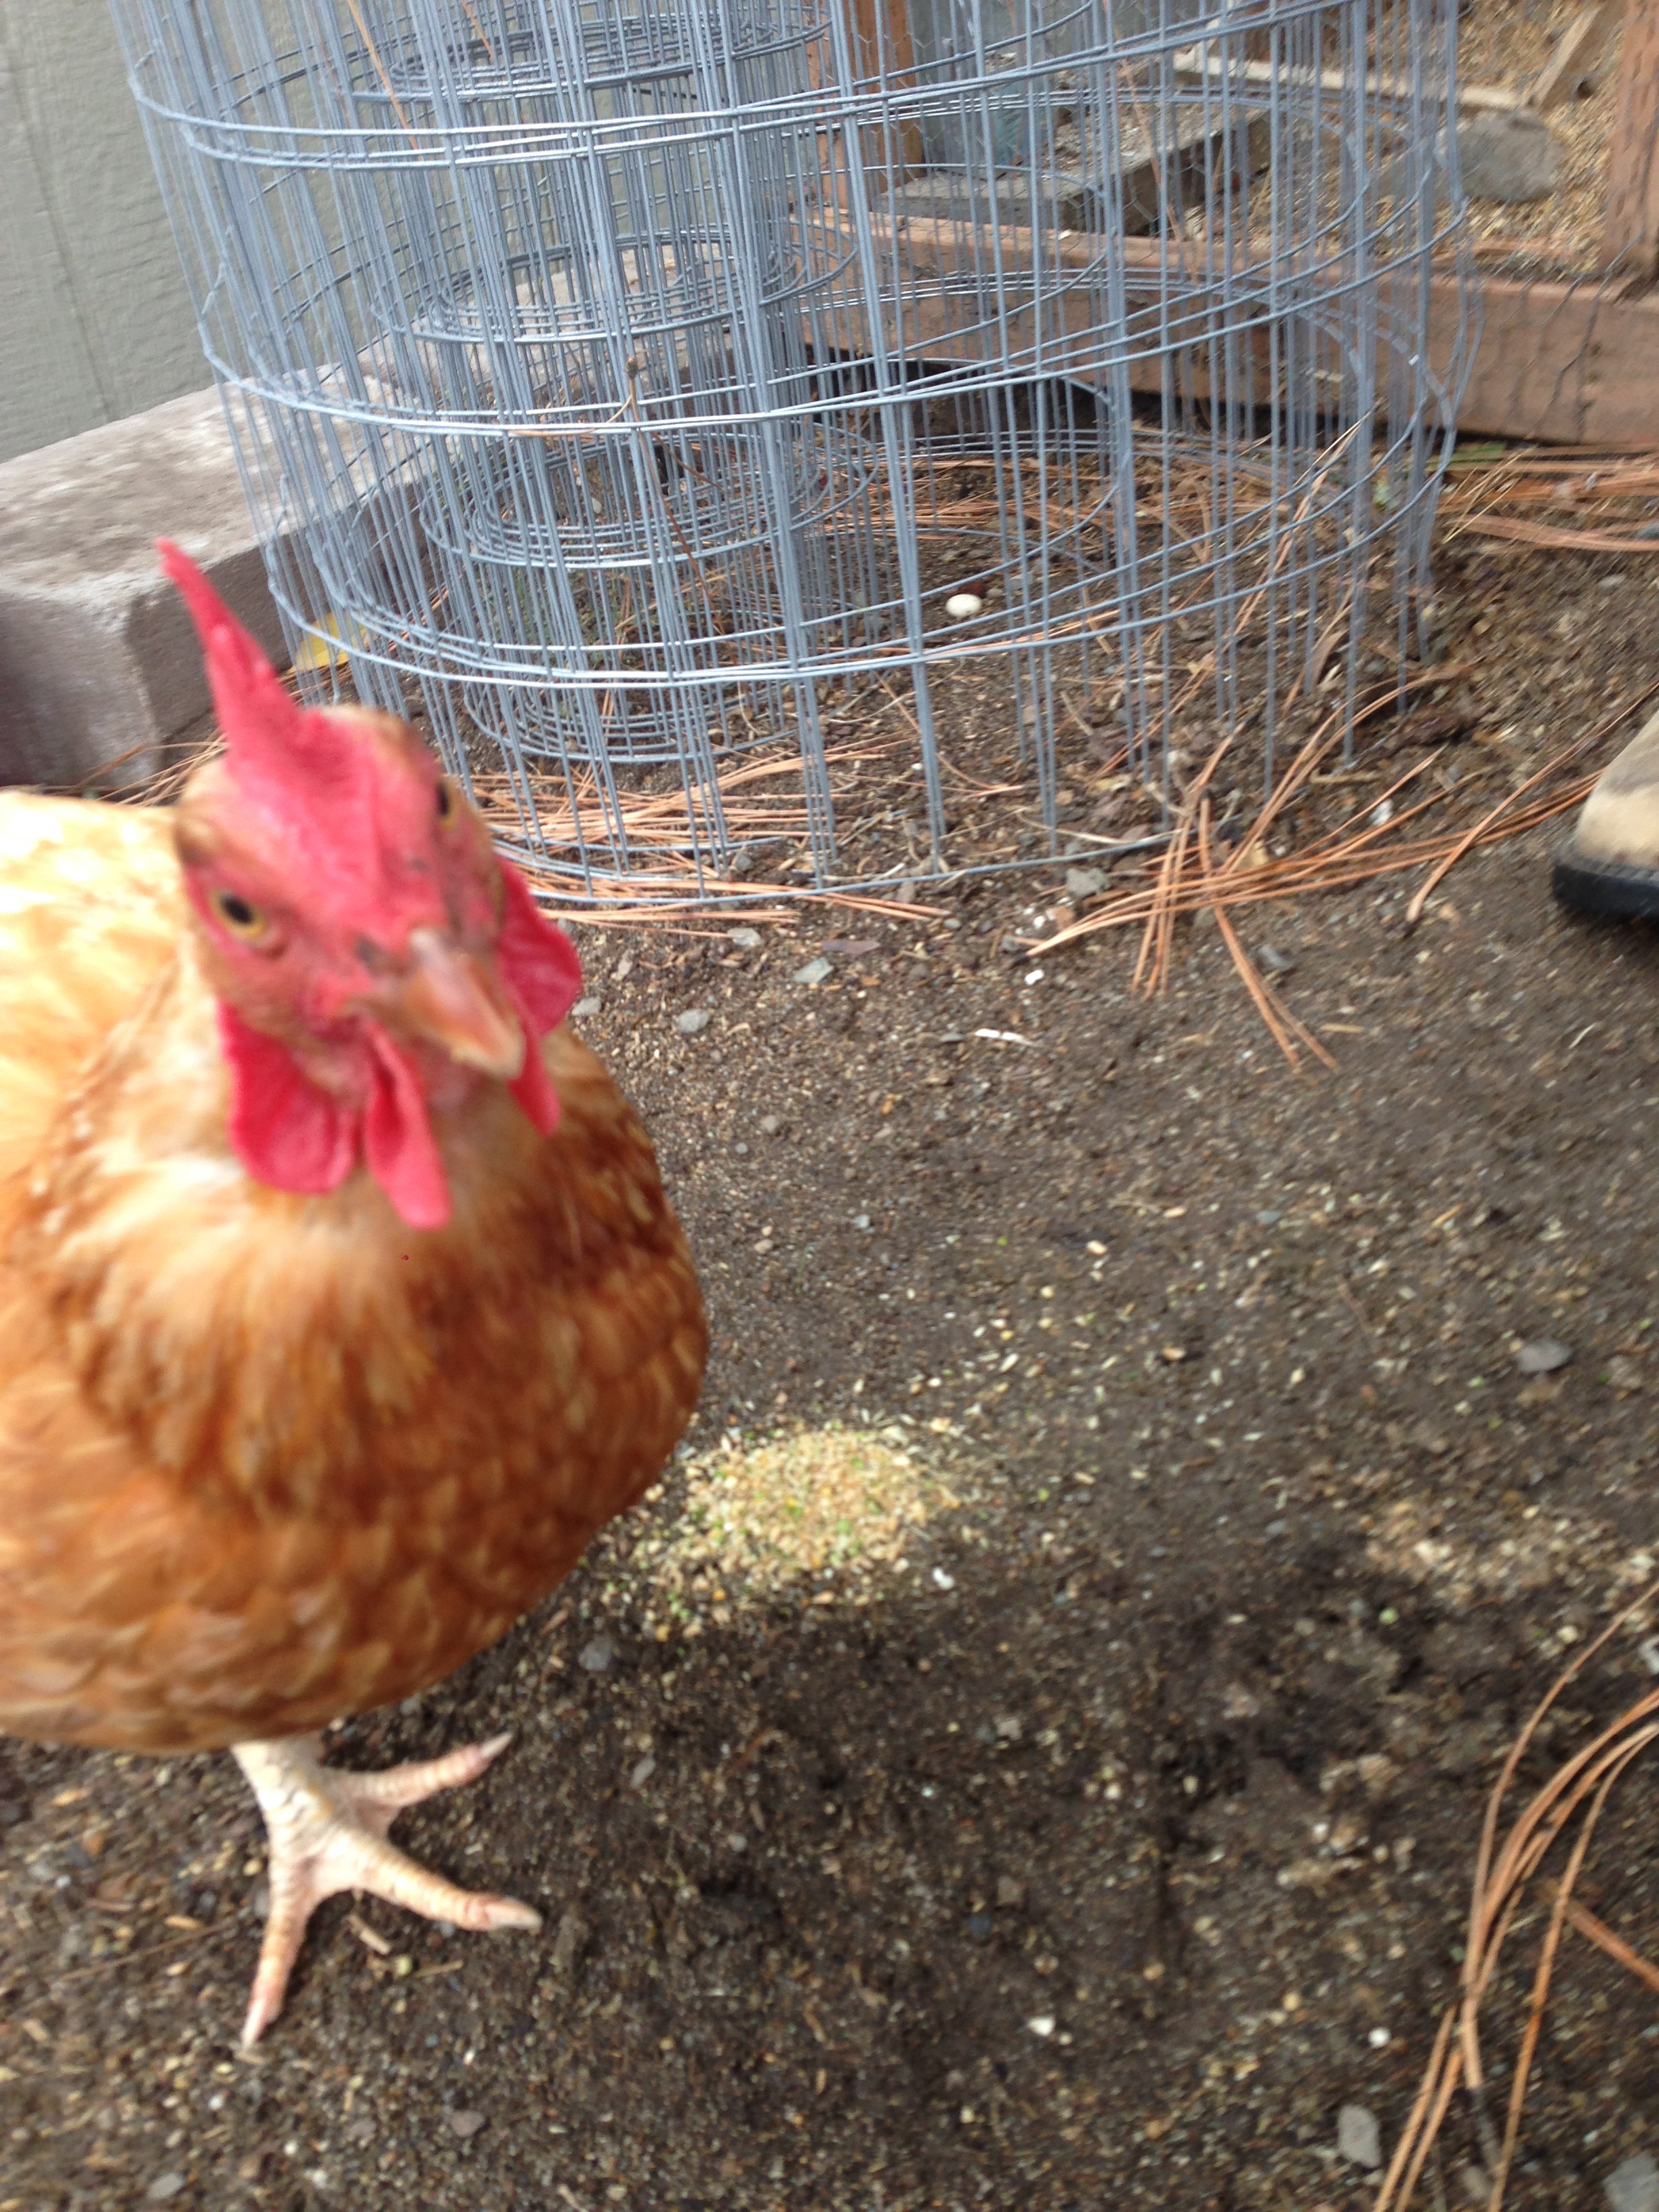 Visiting my new friend, Liz and her chickens in Spokane Valley. This Isn't Liz, but one of the hens.